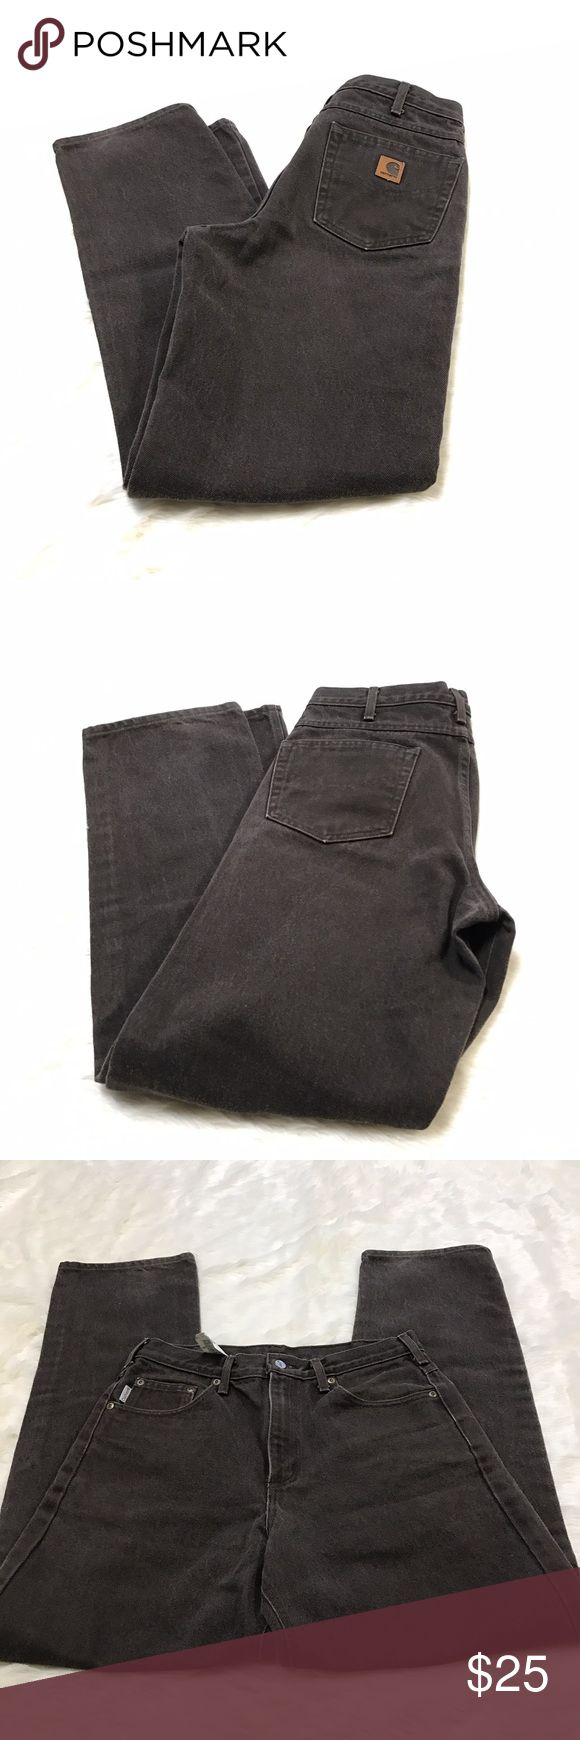 Men's Carhartt Pants 32x34 Brown Jean Relaxed Fit Good condition. No major flaws. See pics for measurements. Carhartt Jeans Relaxed